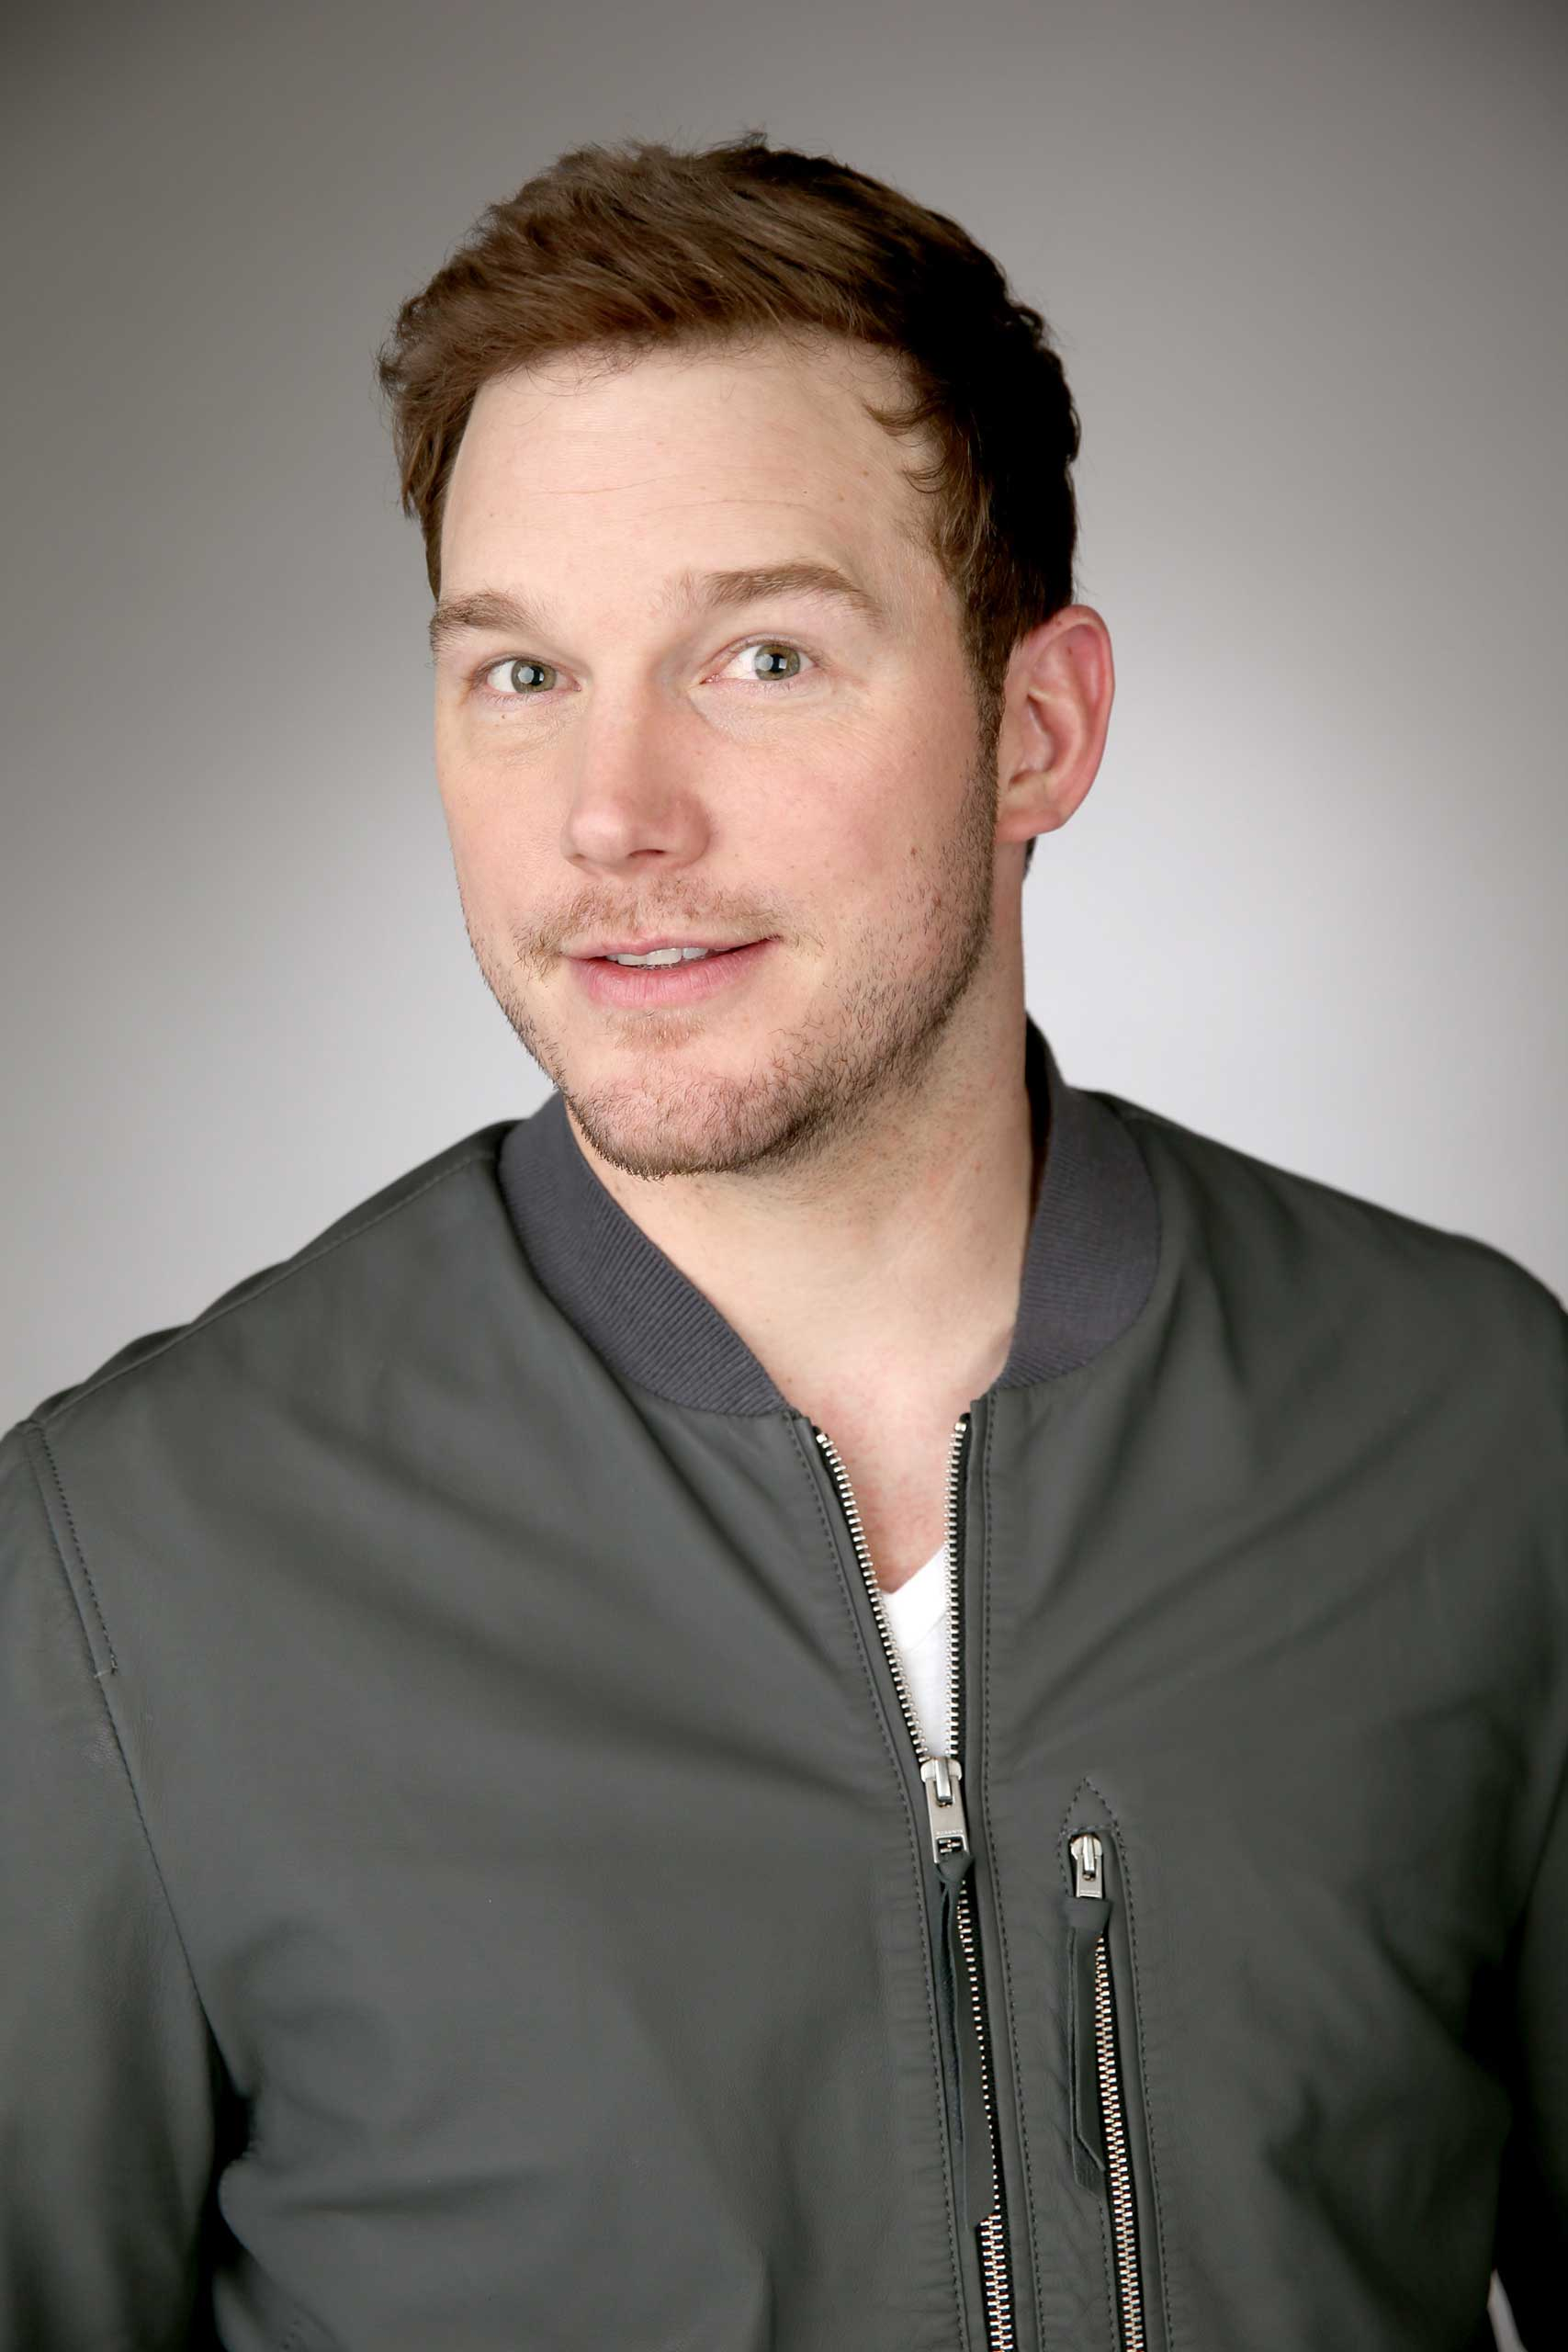 PASADENA, CA - JANUARY 16: Actor Chris Pratt of  Parks and Recreation  poses for a portrait during the NBCUniversal TCA Press Tour at The Langham Huntington, Pasadena on January 16, 2015 in Pasadena, California. (Photo by: Christopher Polk/NBC/NBCU Photo Bank via Getty Images) NUP_166973_2968.JPG